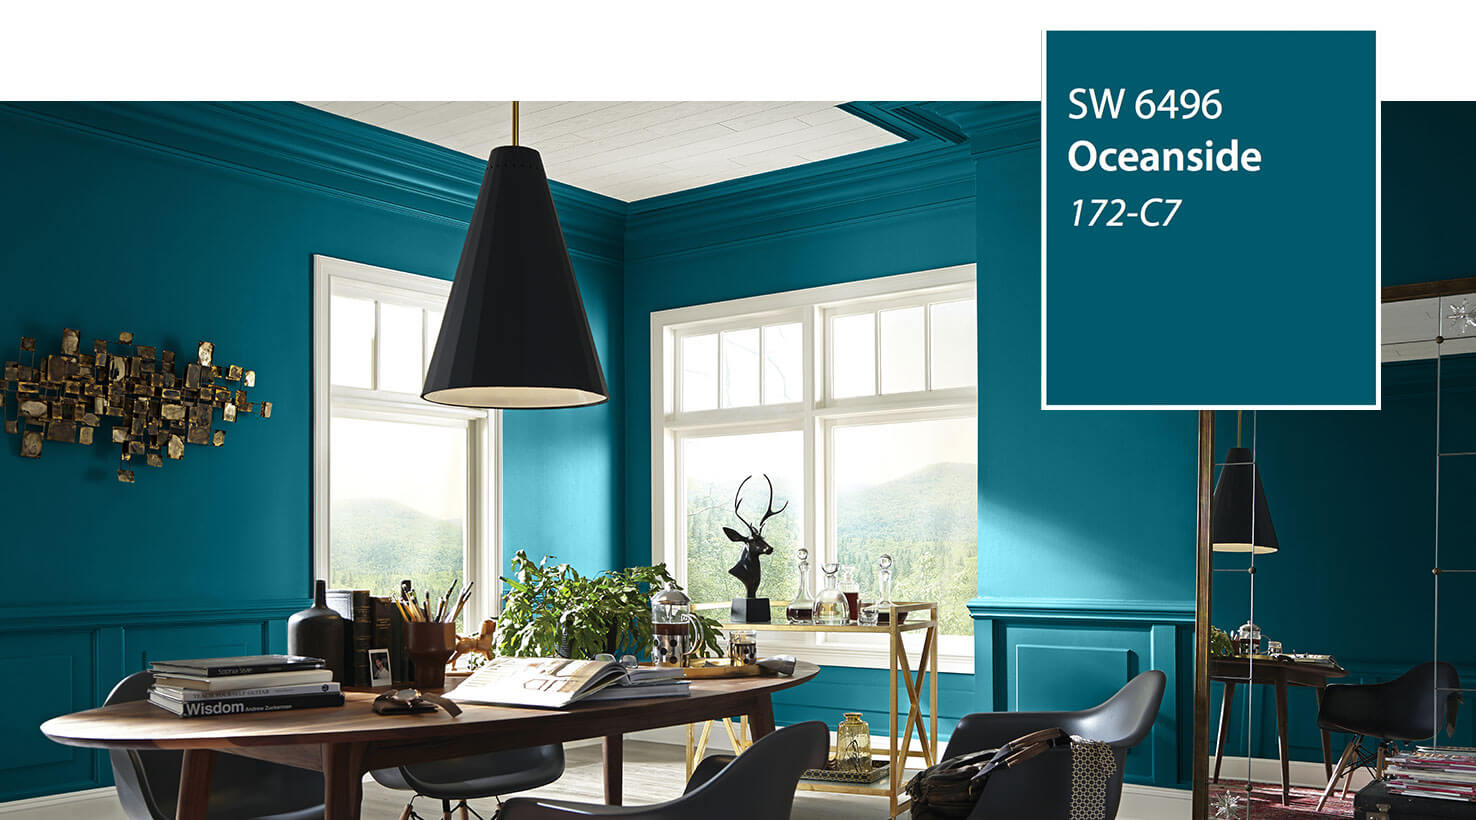 Office painted with Sherwin-Williams Oceanside